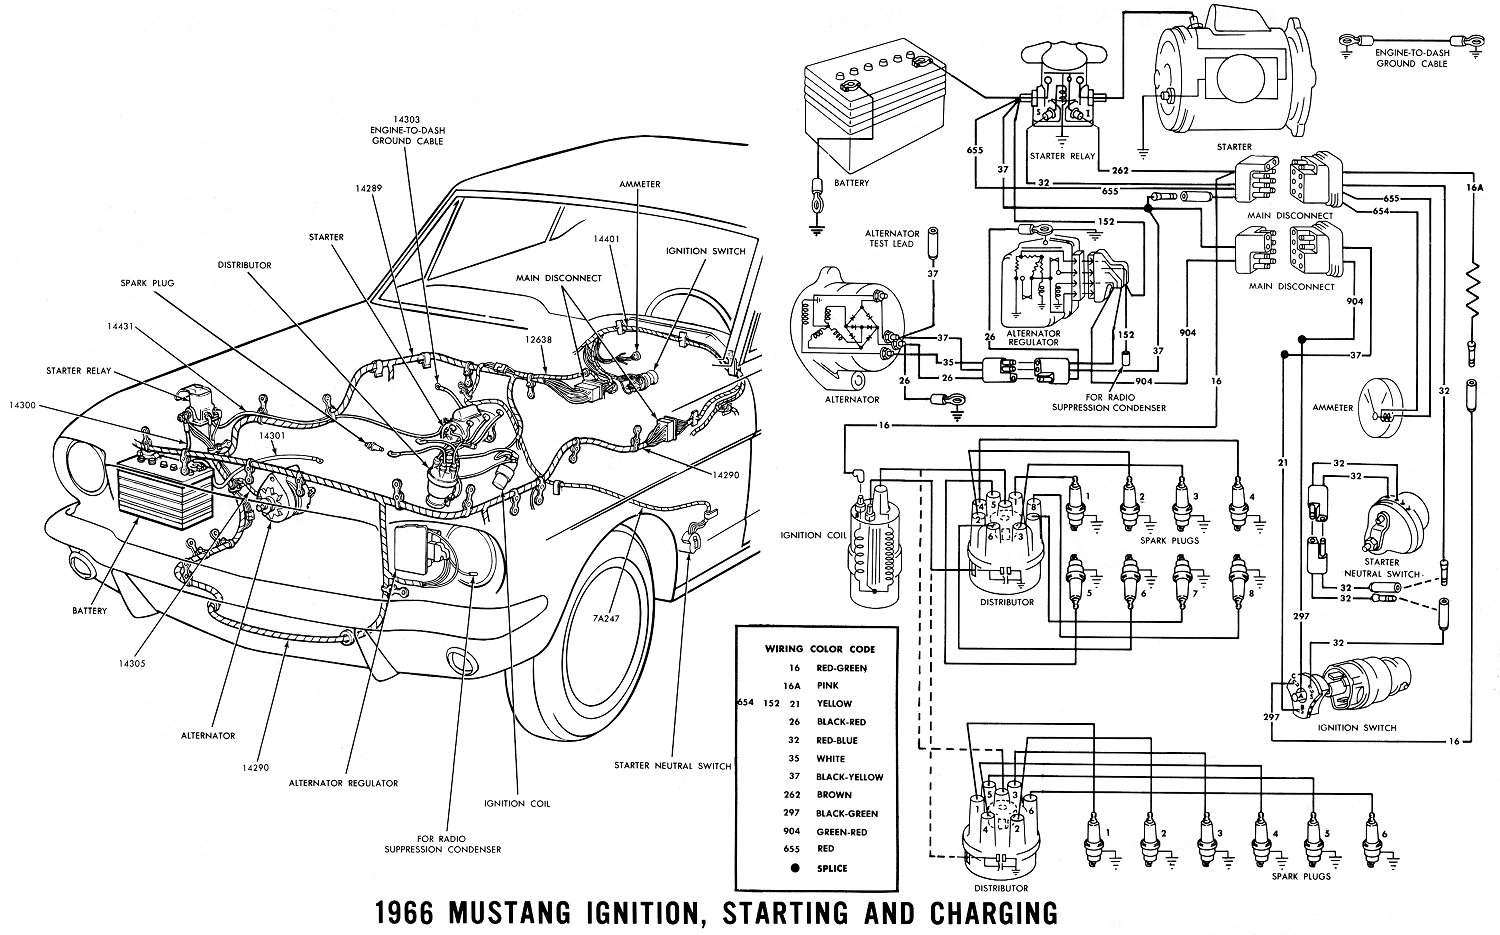 66ignit 1968 mustang coil wiring diagram wiring diagram simonand 1970 mustang wiring diagram pdf at bakdesigns.co